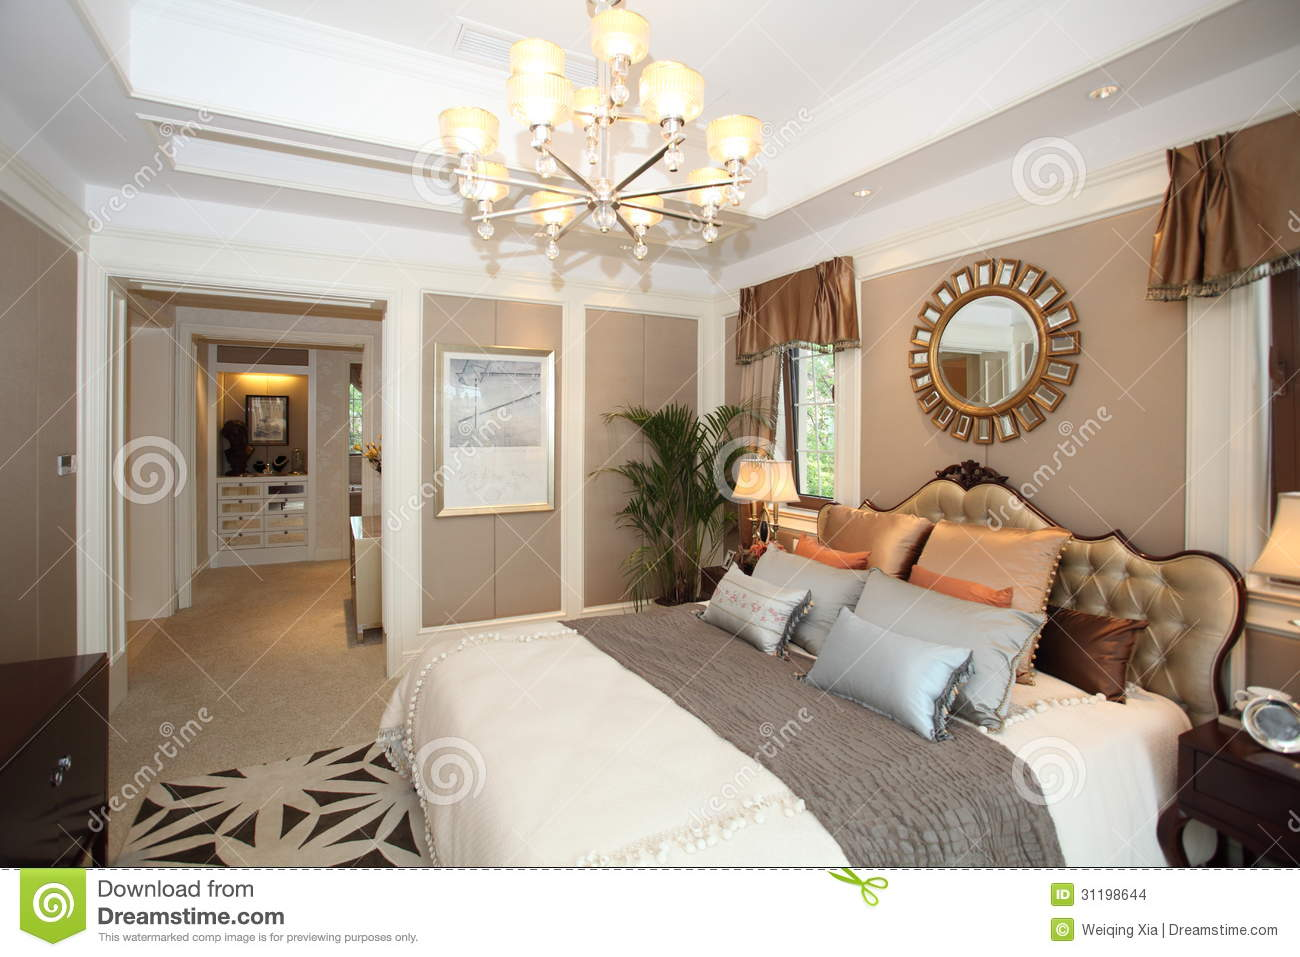 Luxury Home Bedroom Stock Images  Image 31198644